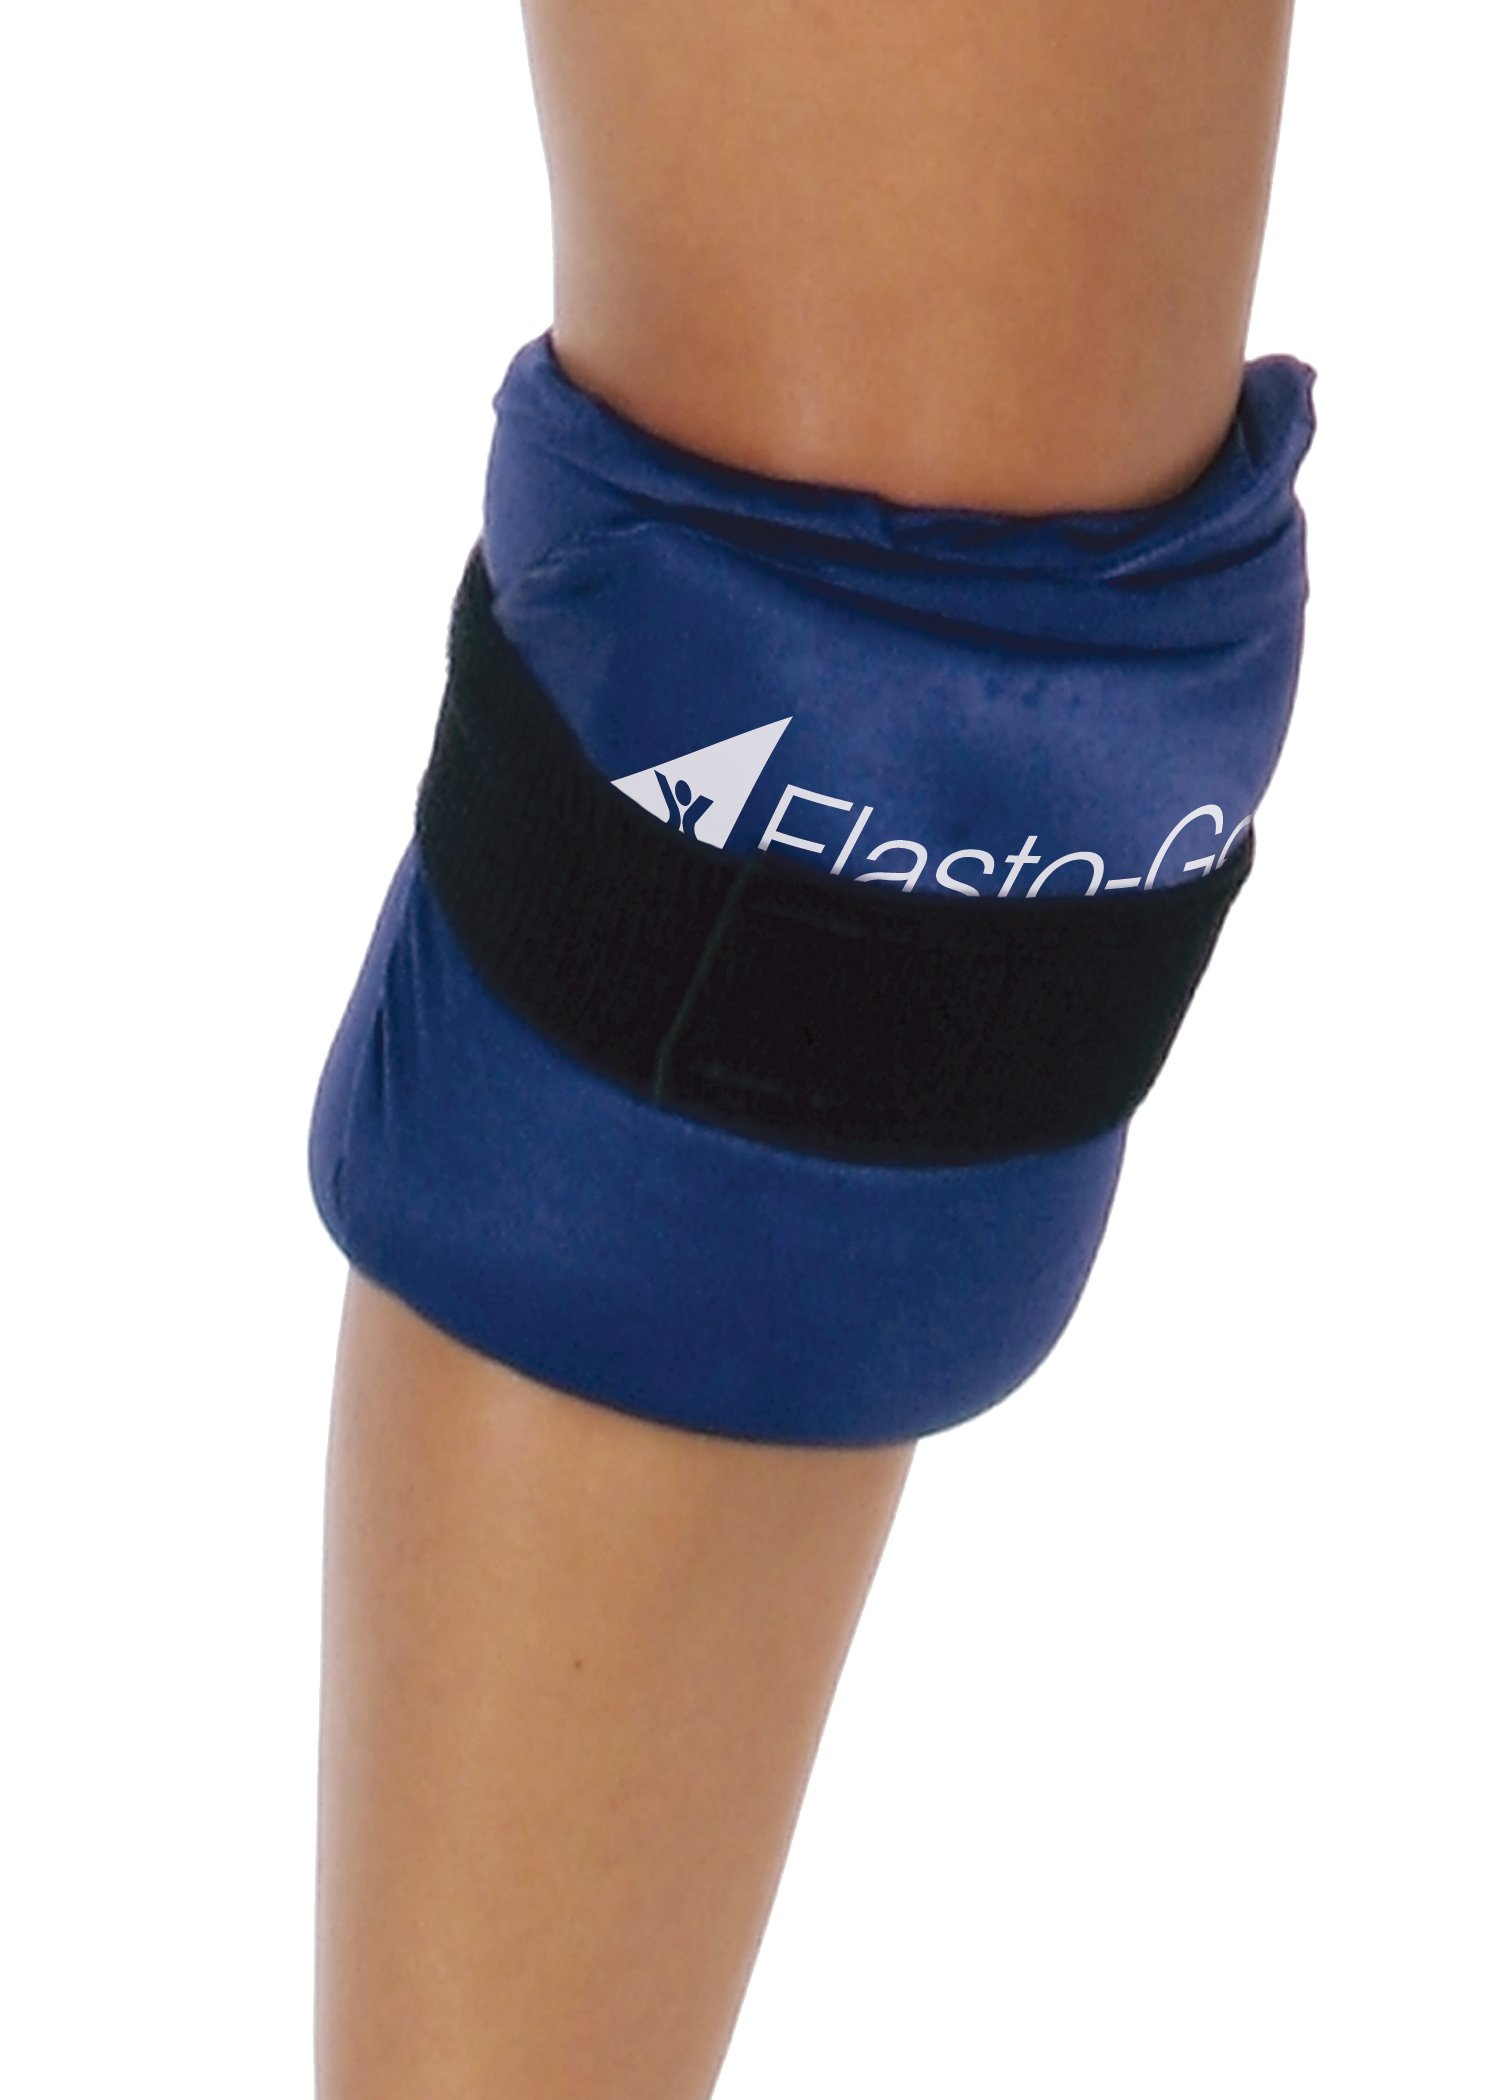 SPECIAL PACK OF 3-Elasto Gel Hot / Cold Therapy Wrap 6 x30